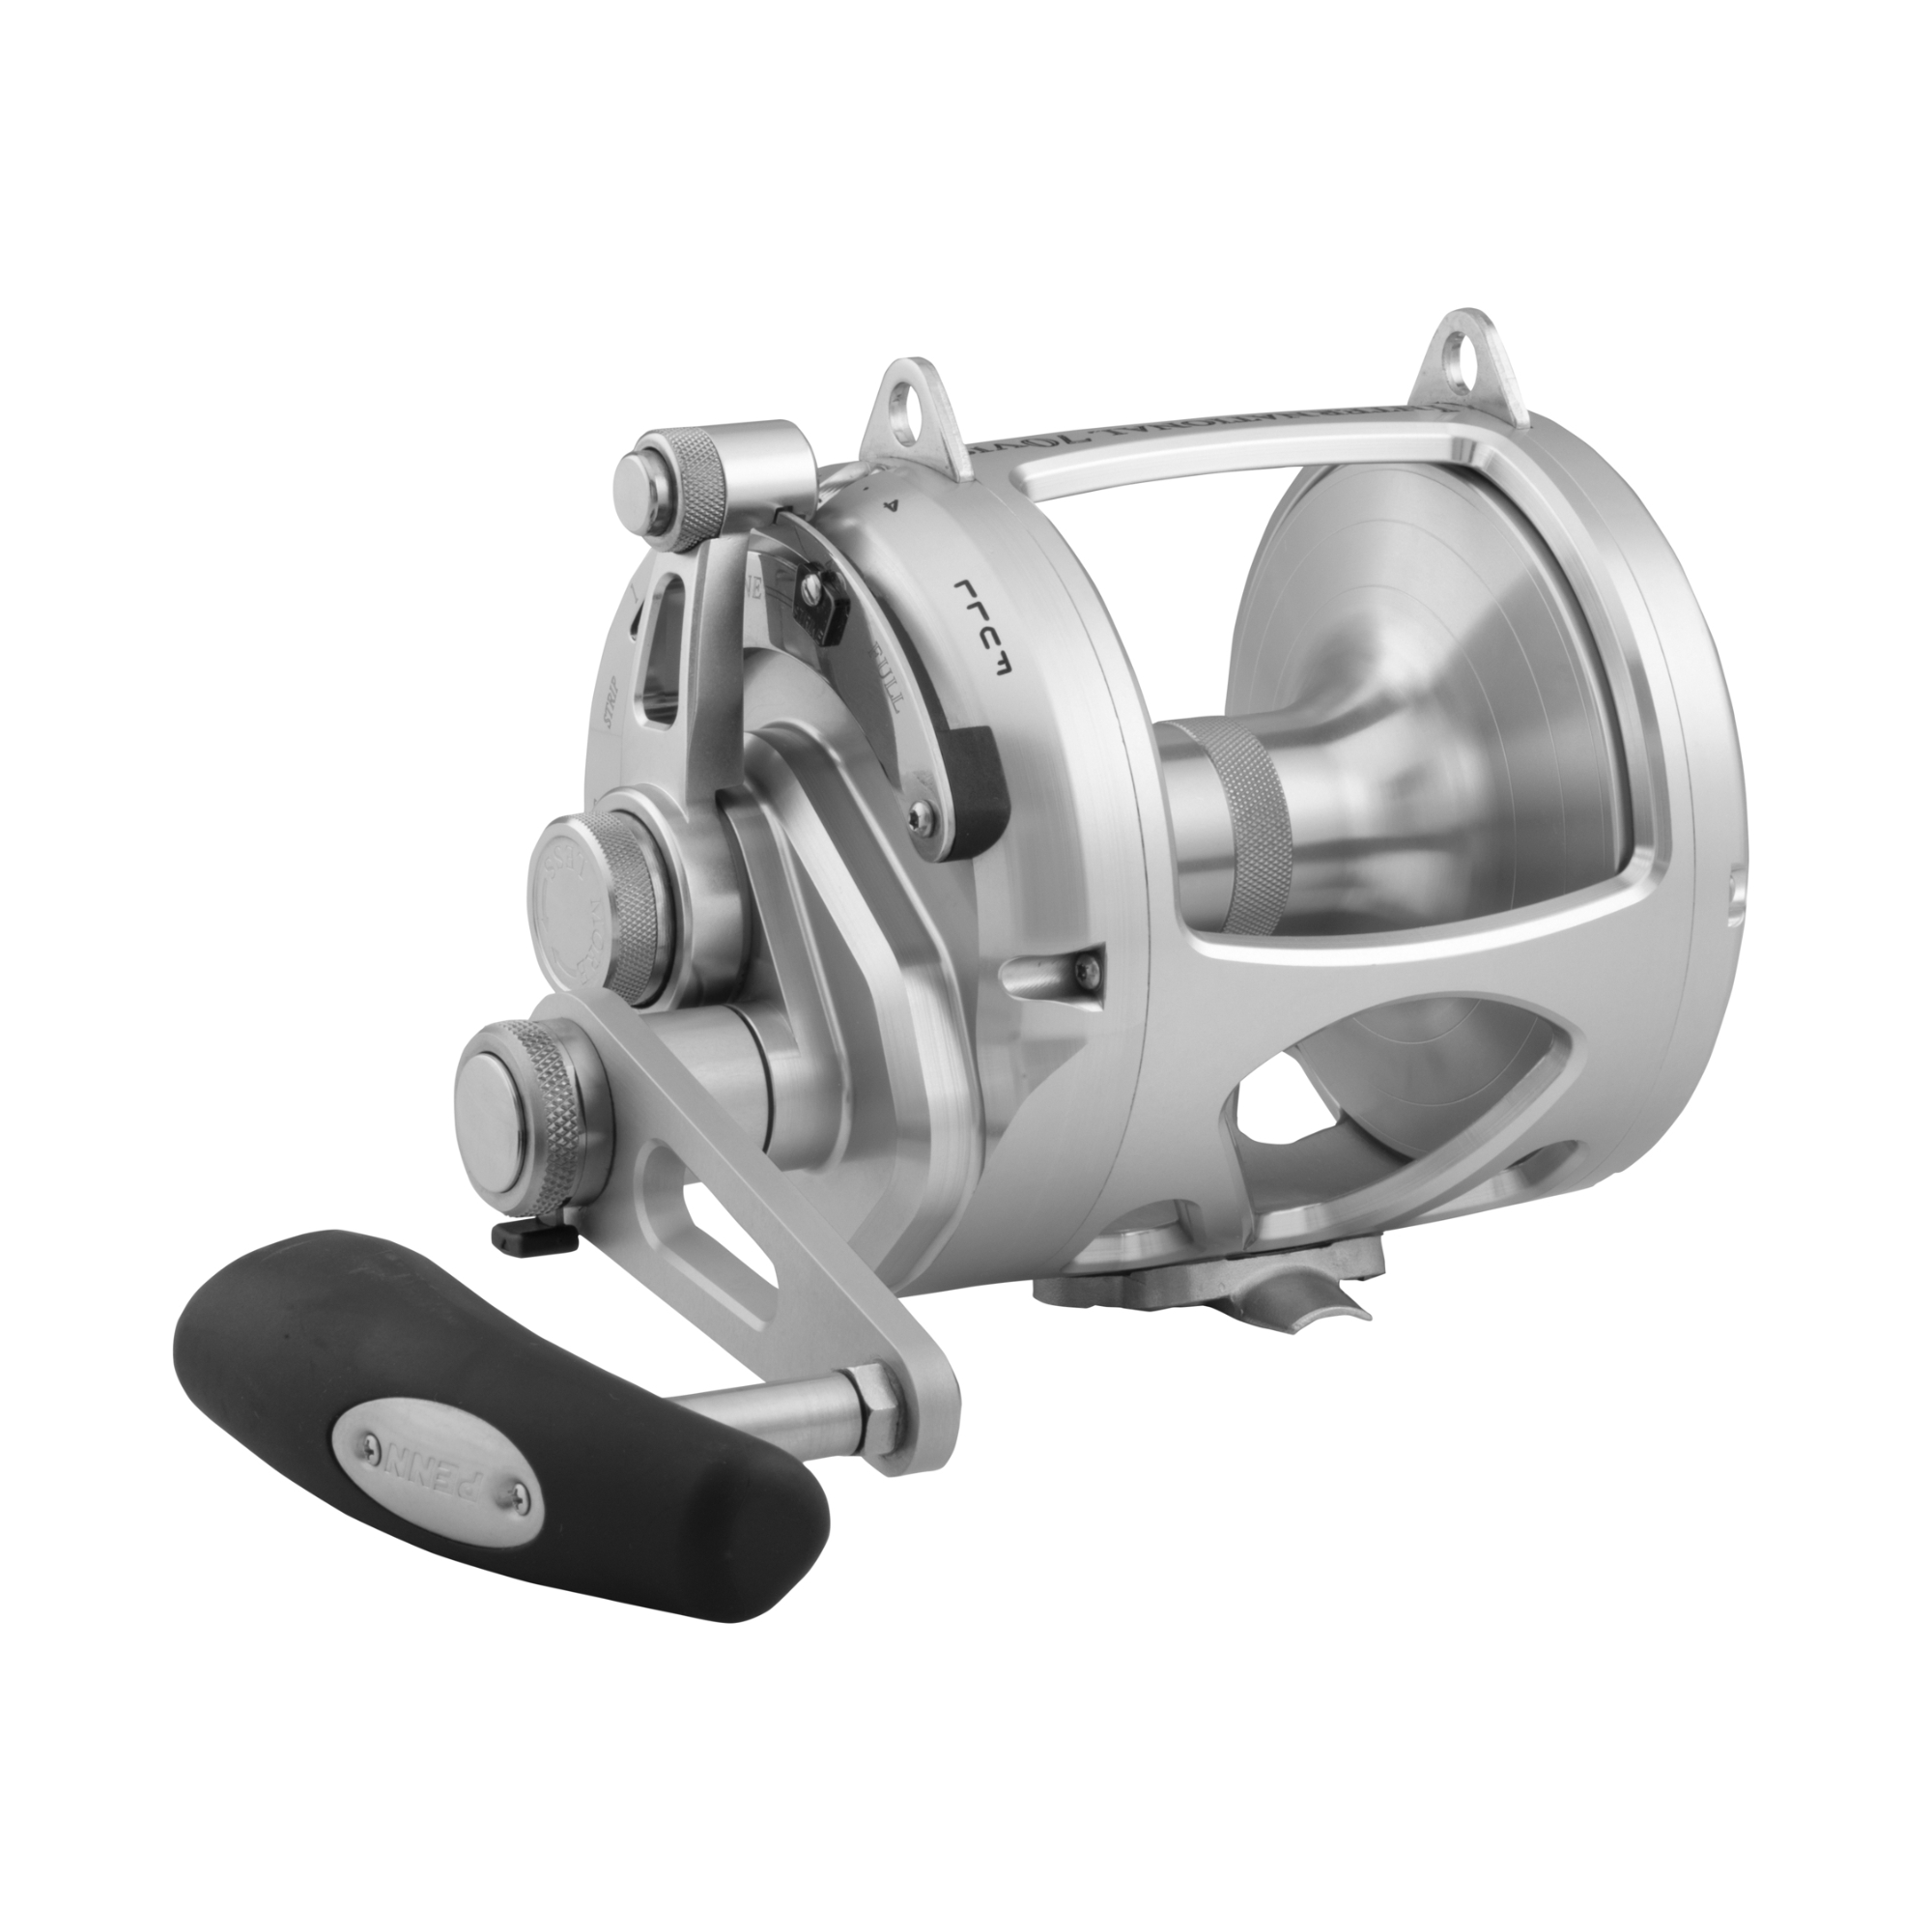 Penn 70VISS Silver International VIS Quick Select Reel